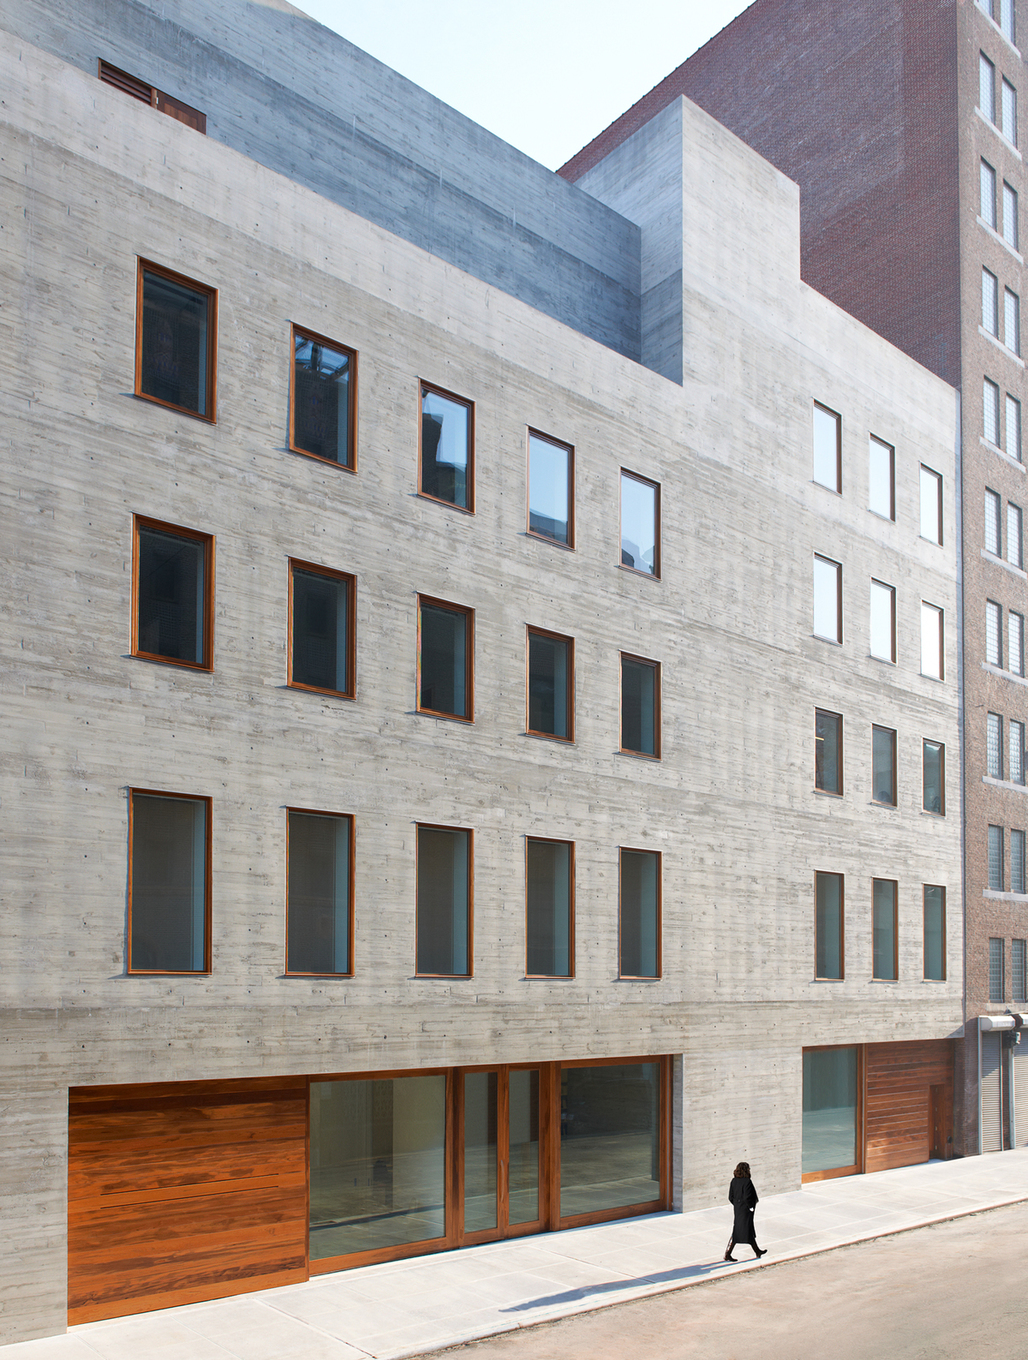 David Zwirner, 20th Street by Selldorf Architects. Photo © Jason Schmidt. Courtesy of Selldorf Architects.